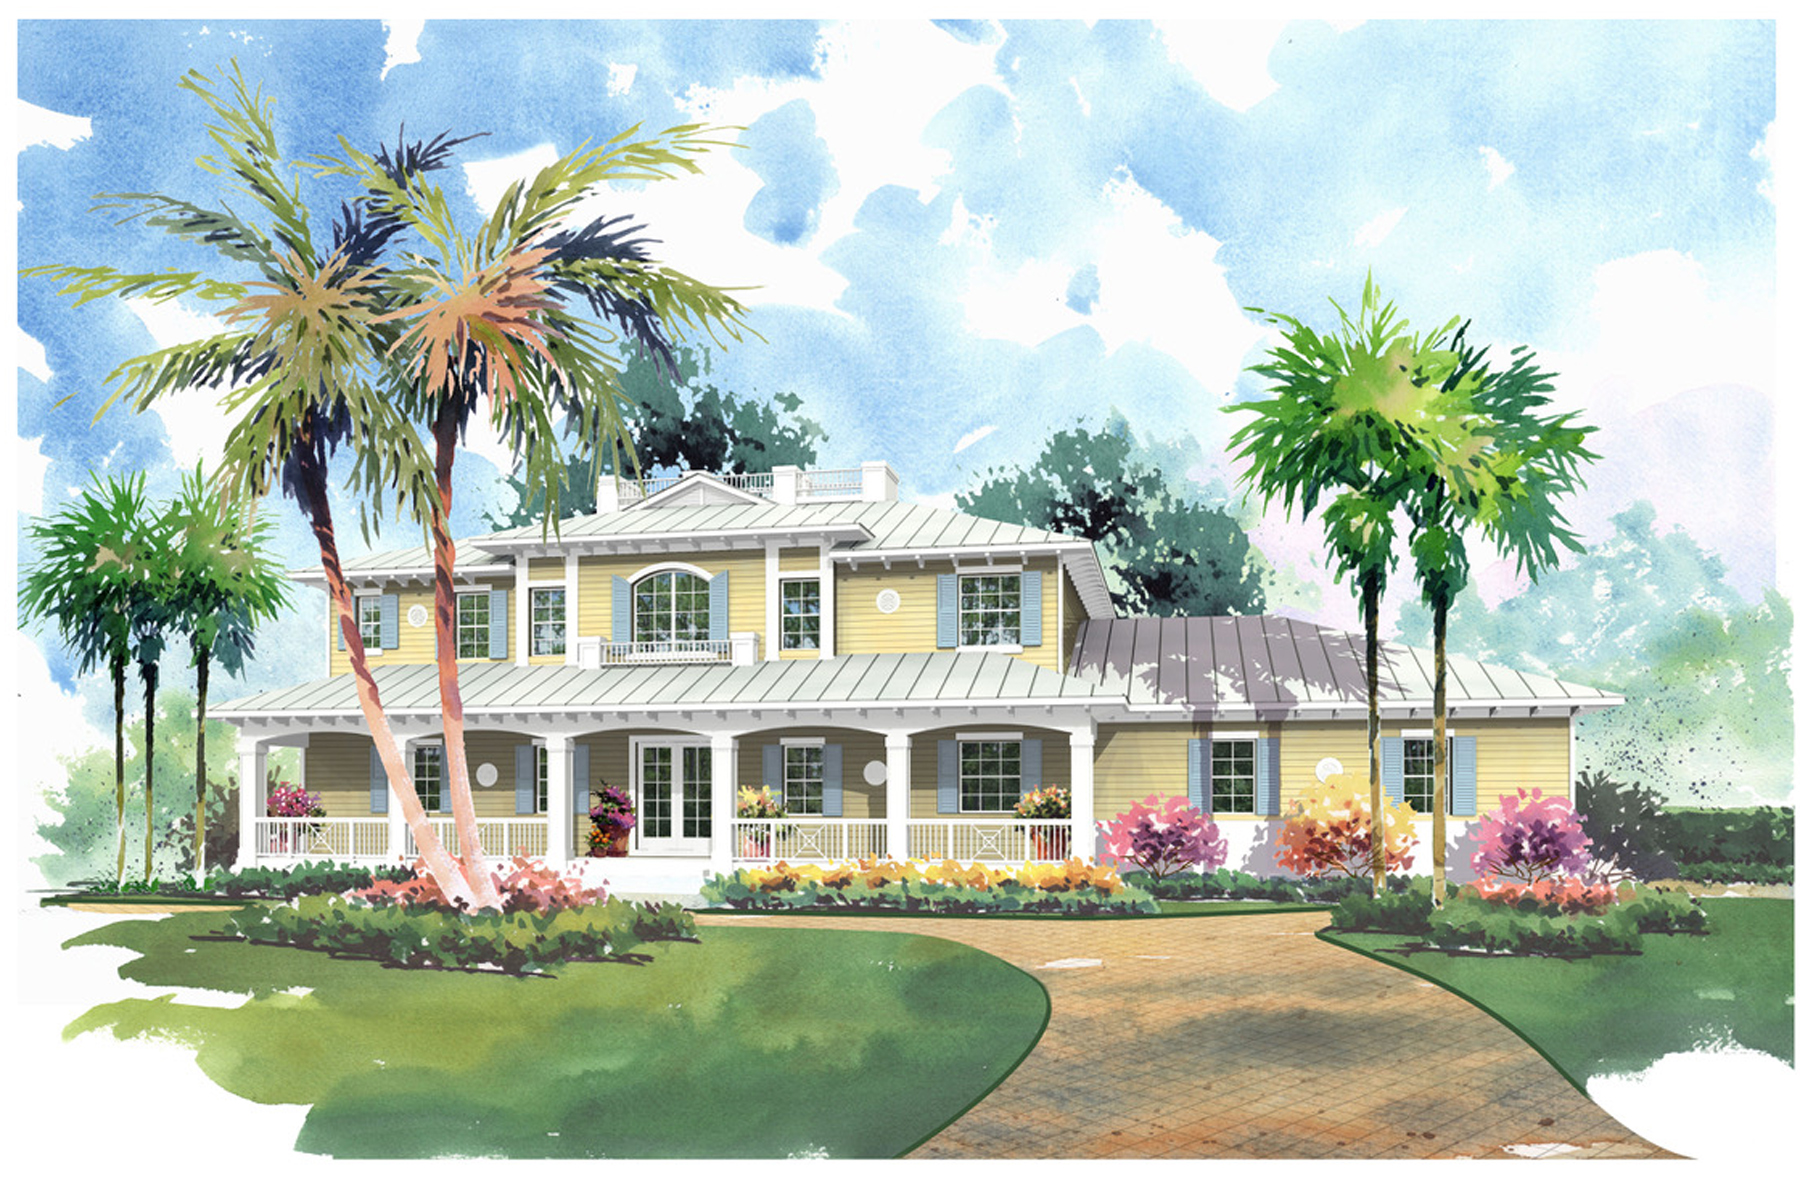 Moradia para Venda às New Construction Home at Ocean Reef 17 Country Club Road Key Largo, Florida, 33037 Estados Unidos